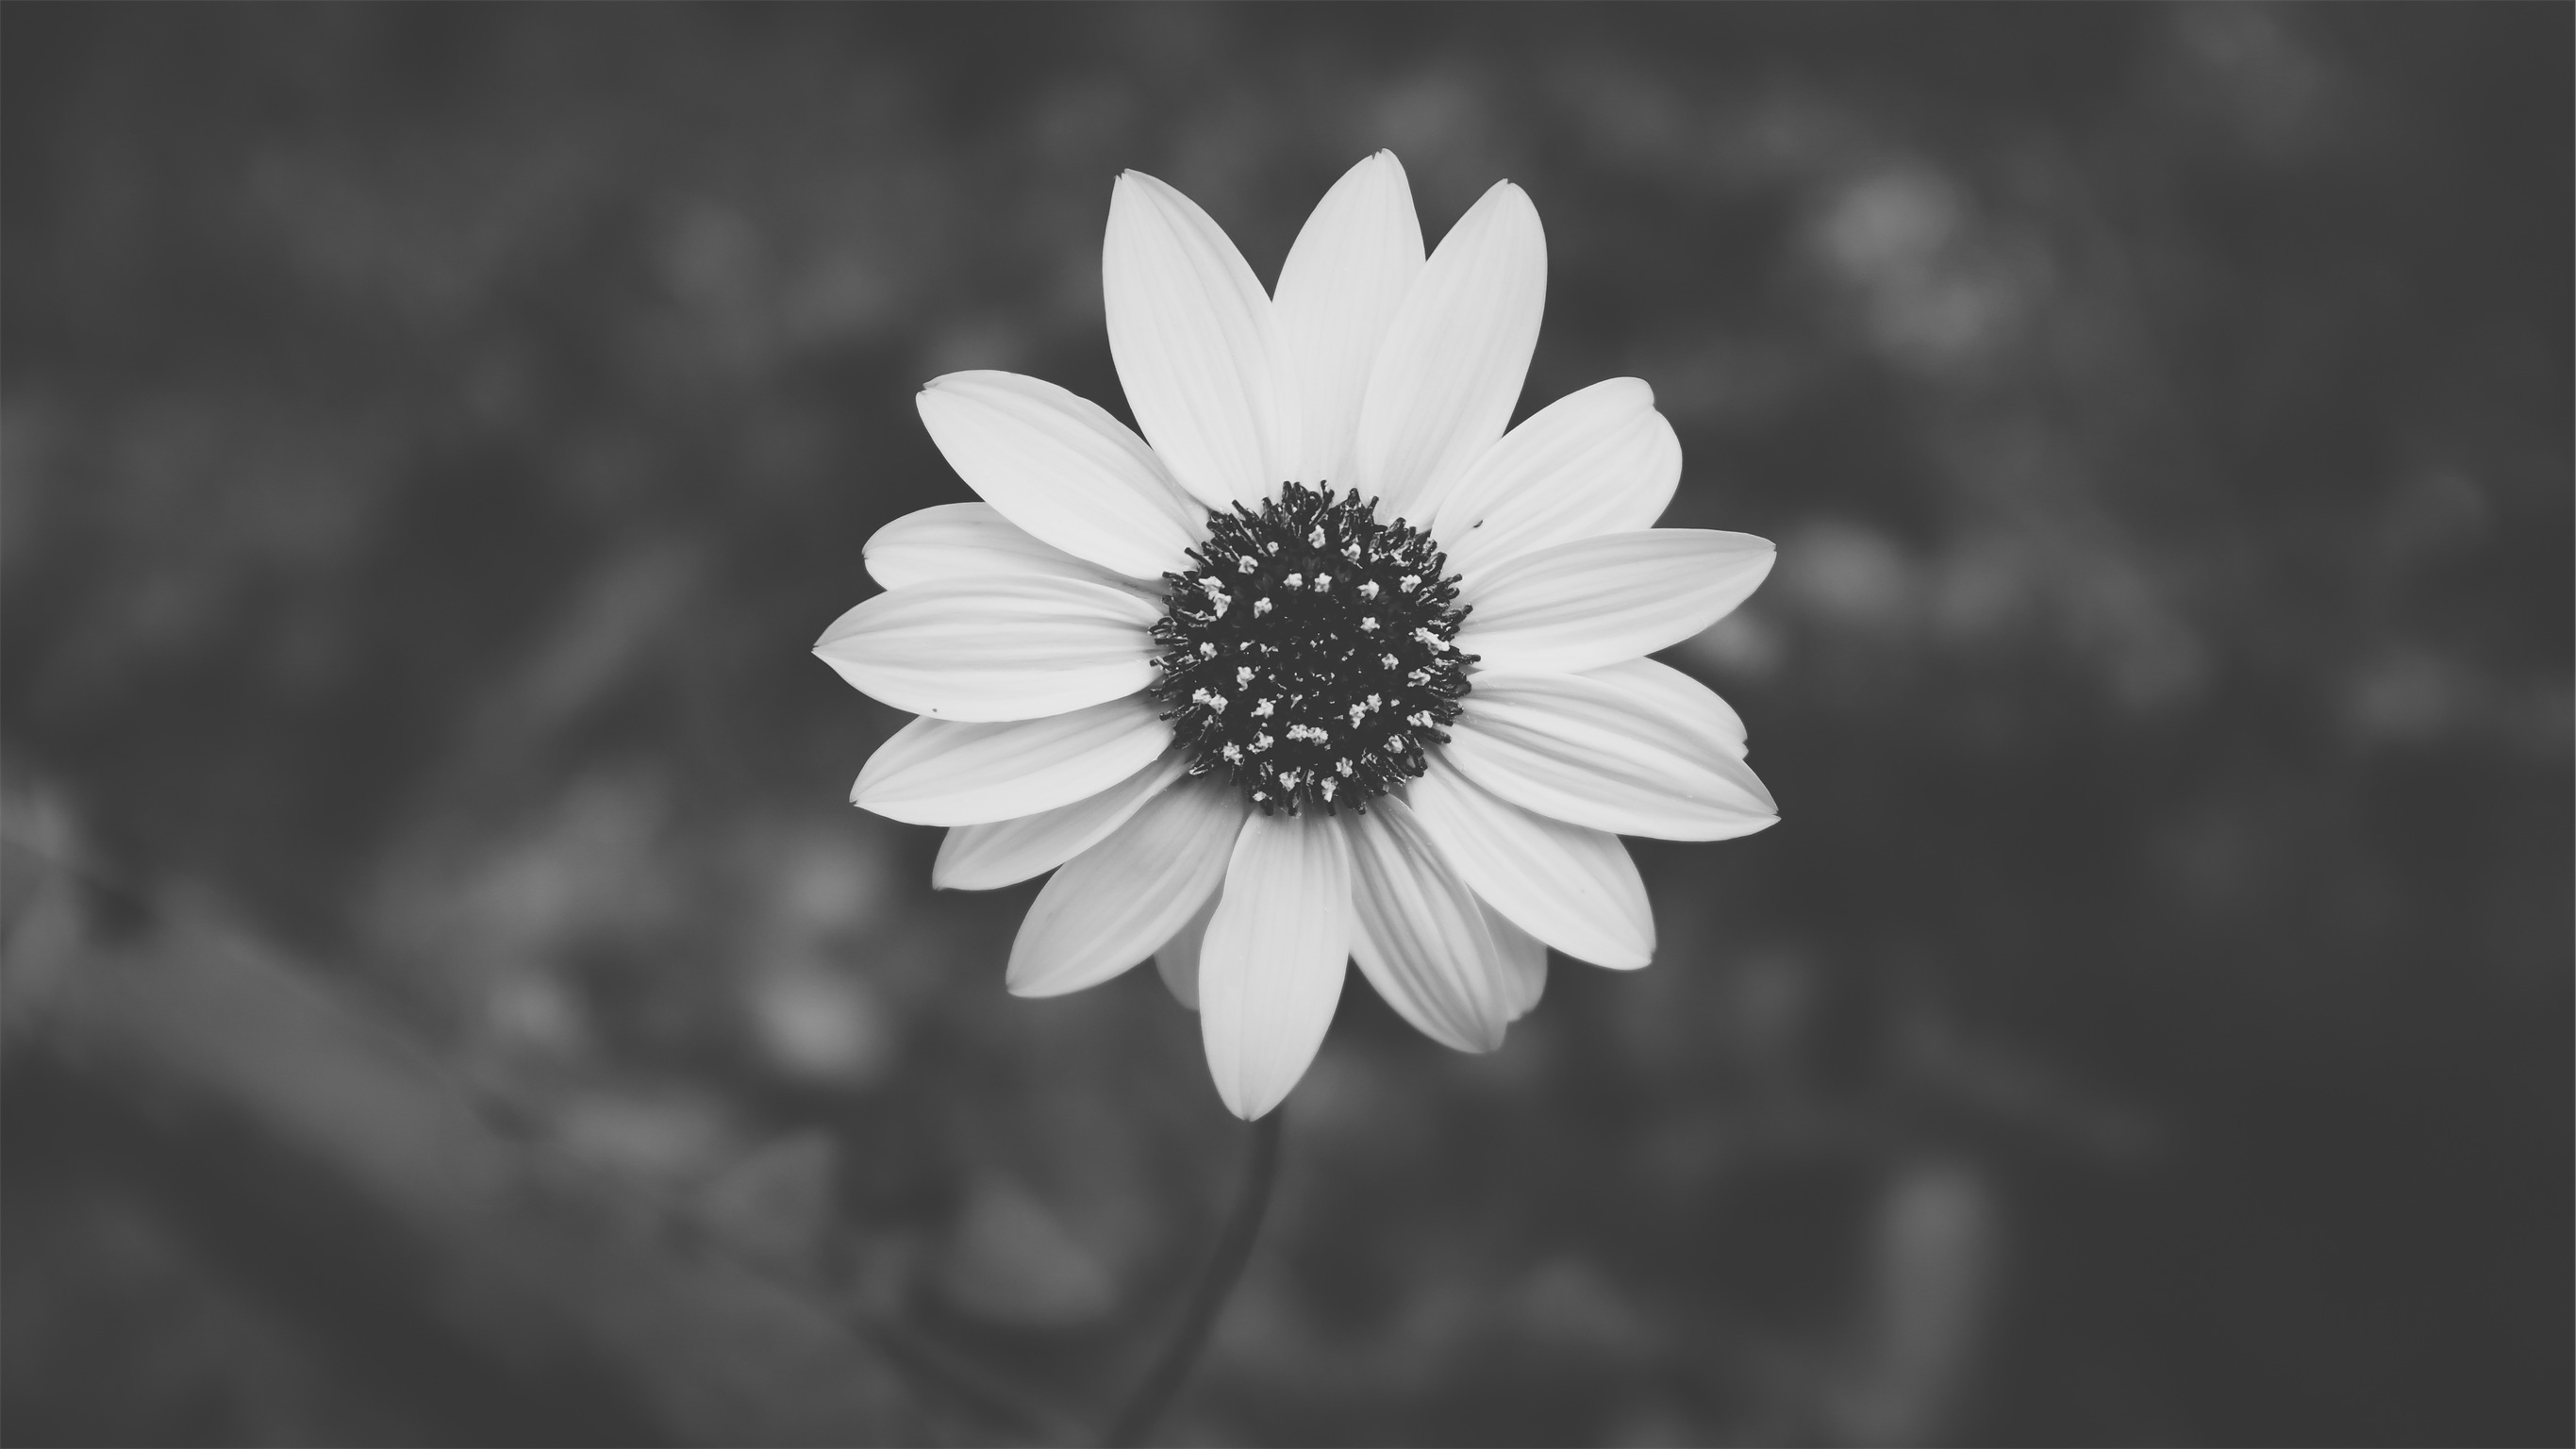 picalls flower black and white by kien do